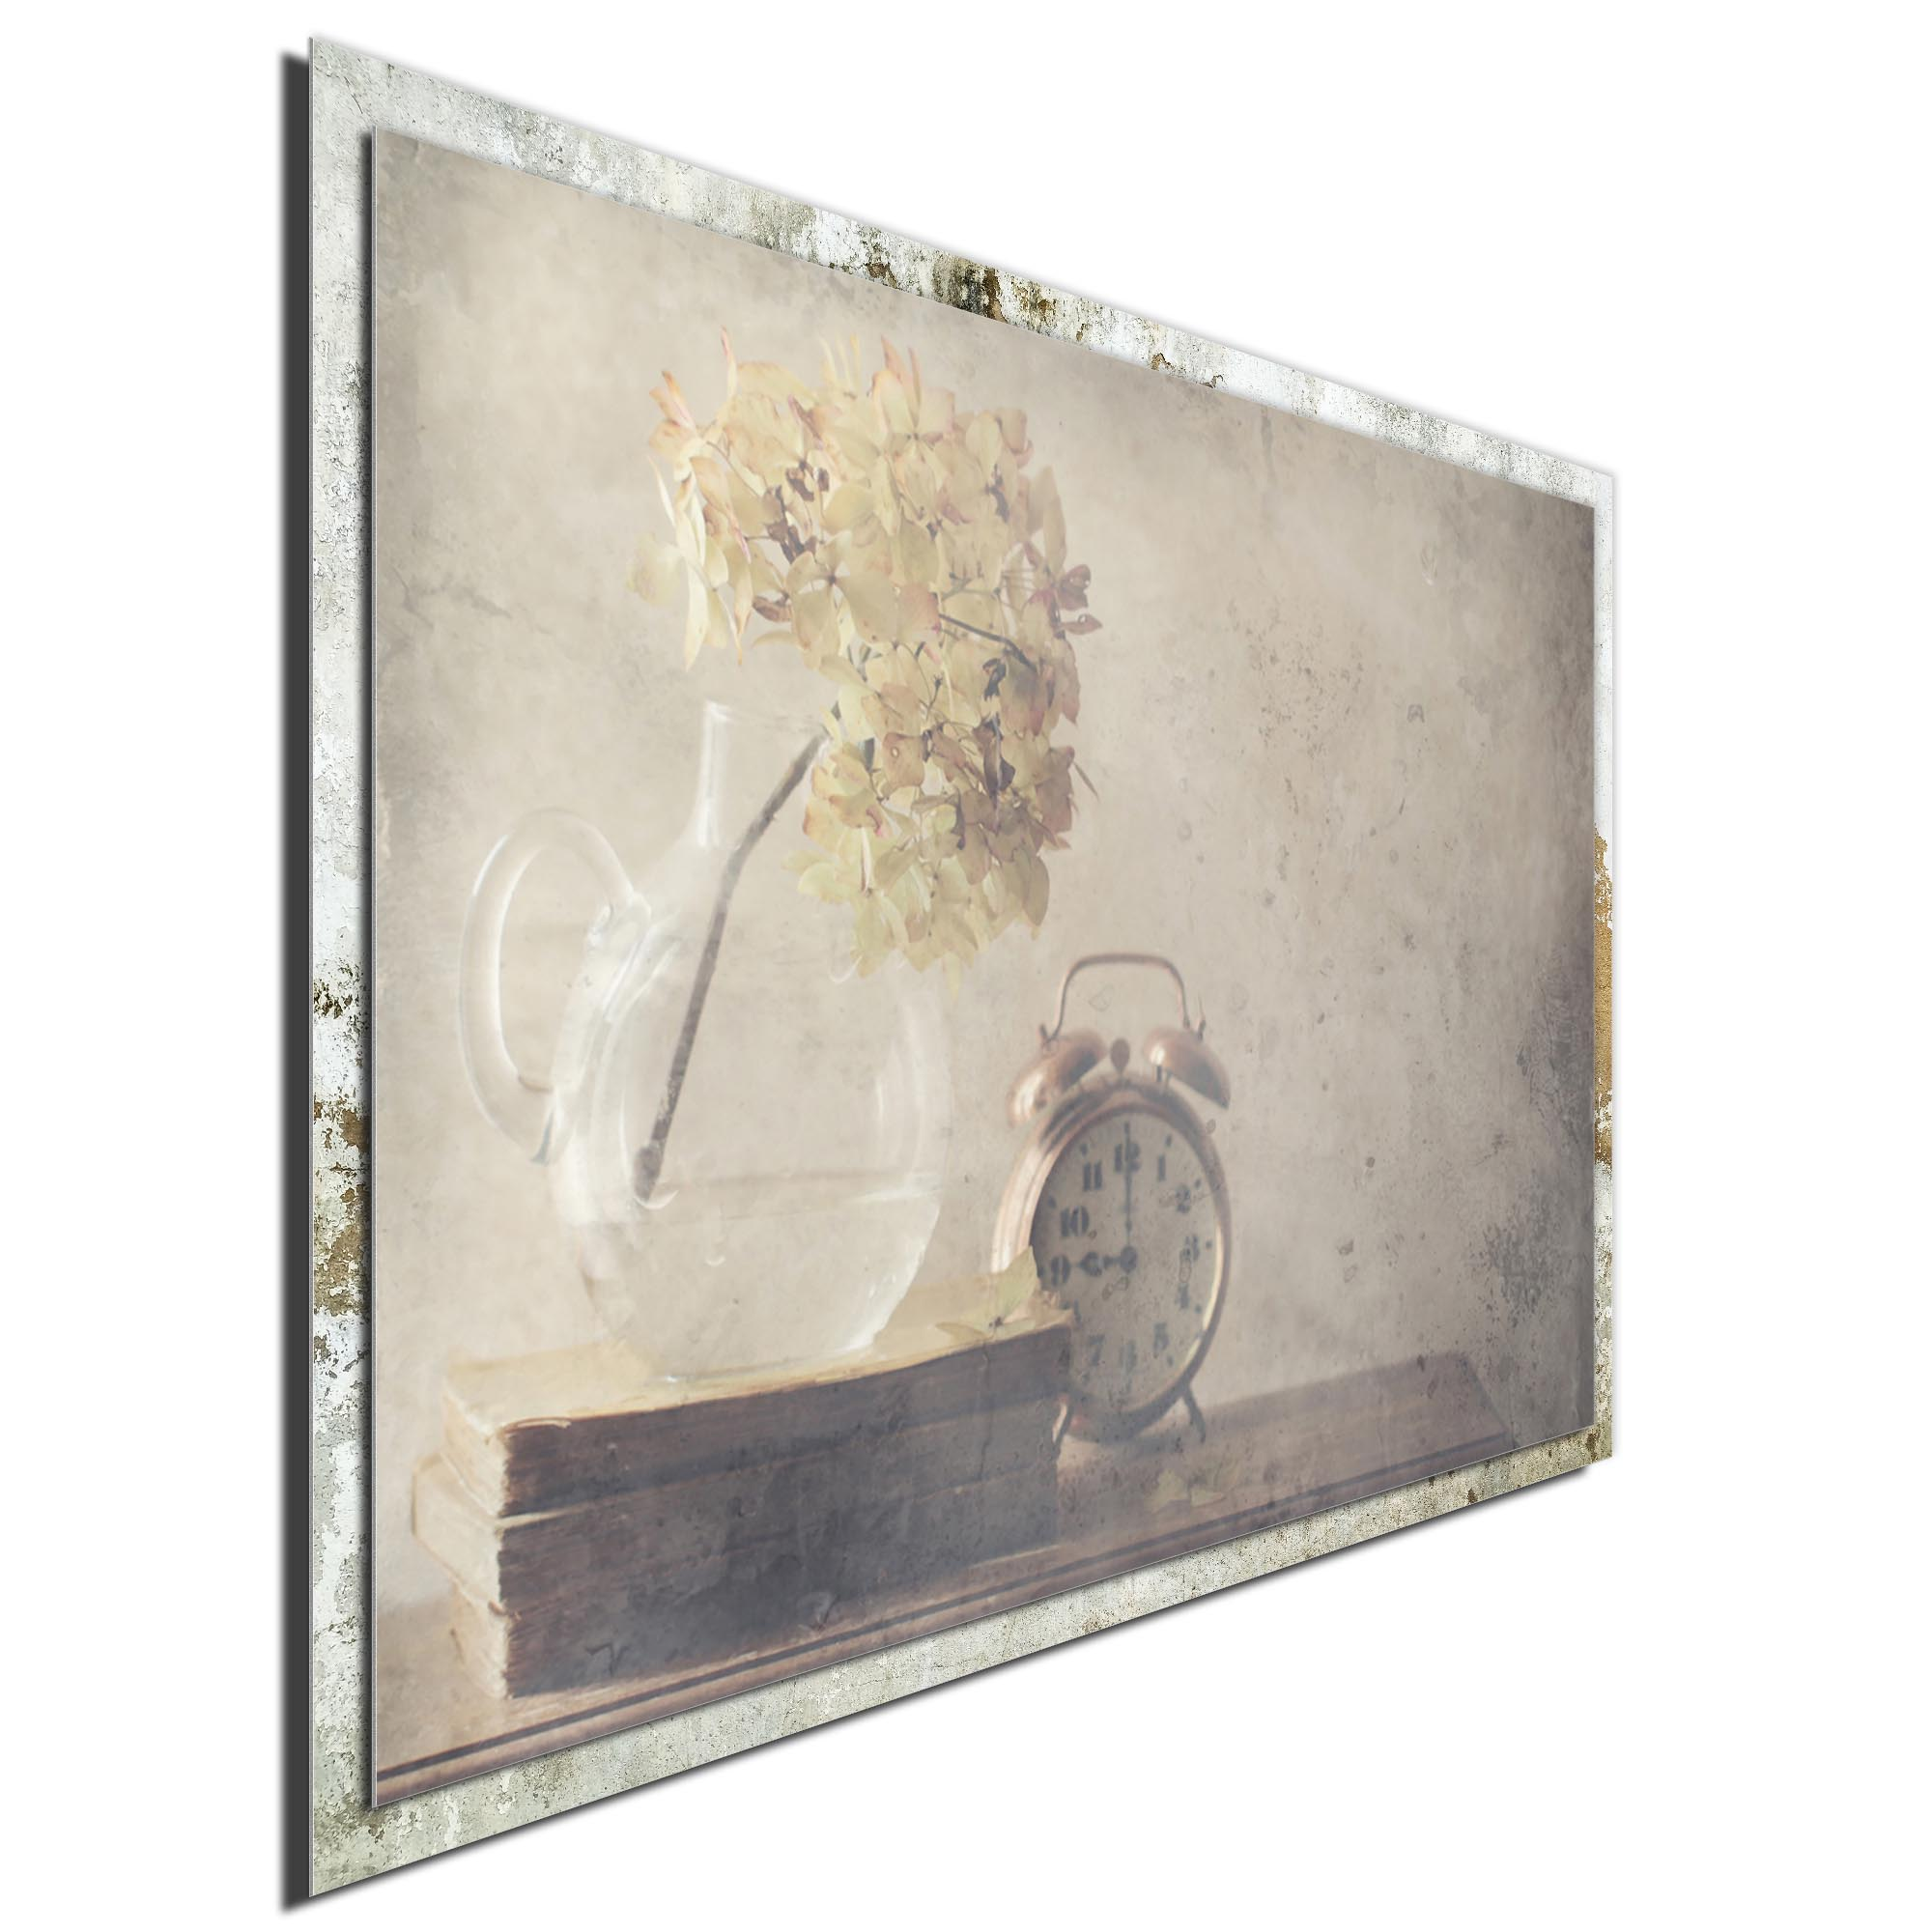 Disillusionment of Nine O'Clock by Delphine Devos - Modern Farmhouse Floral on Metal - Image 2